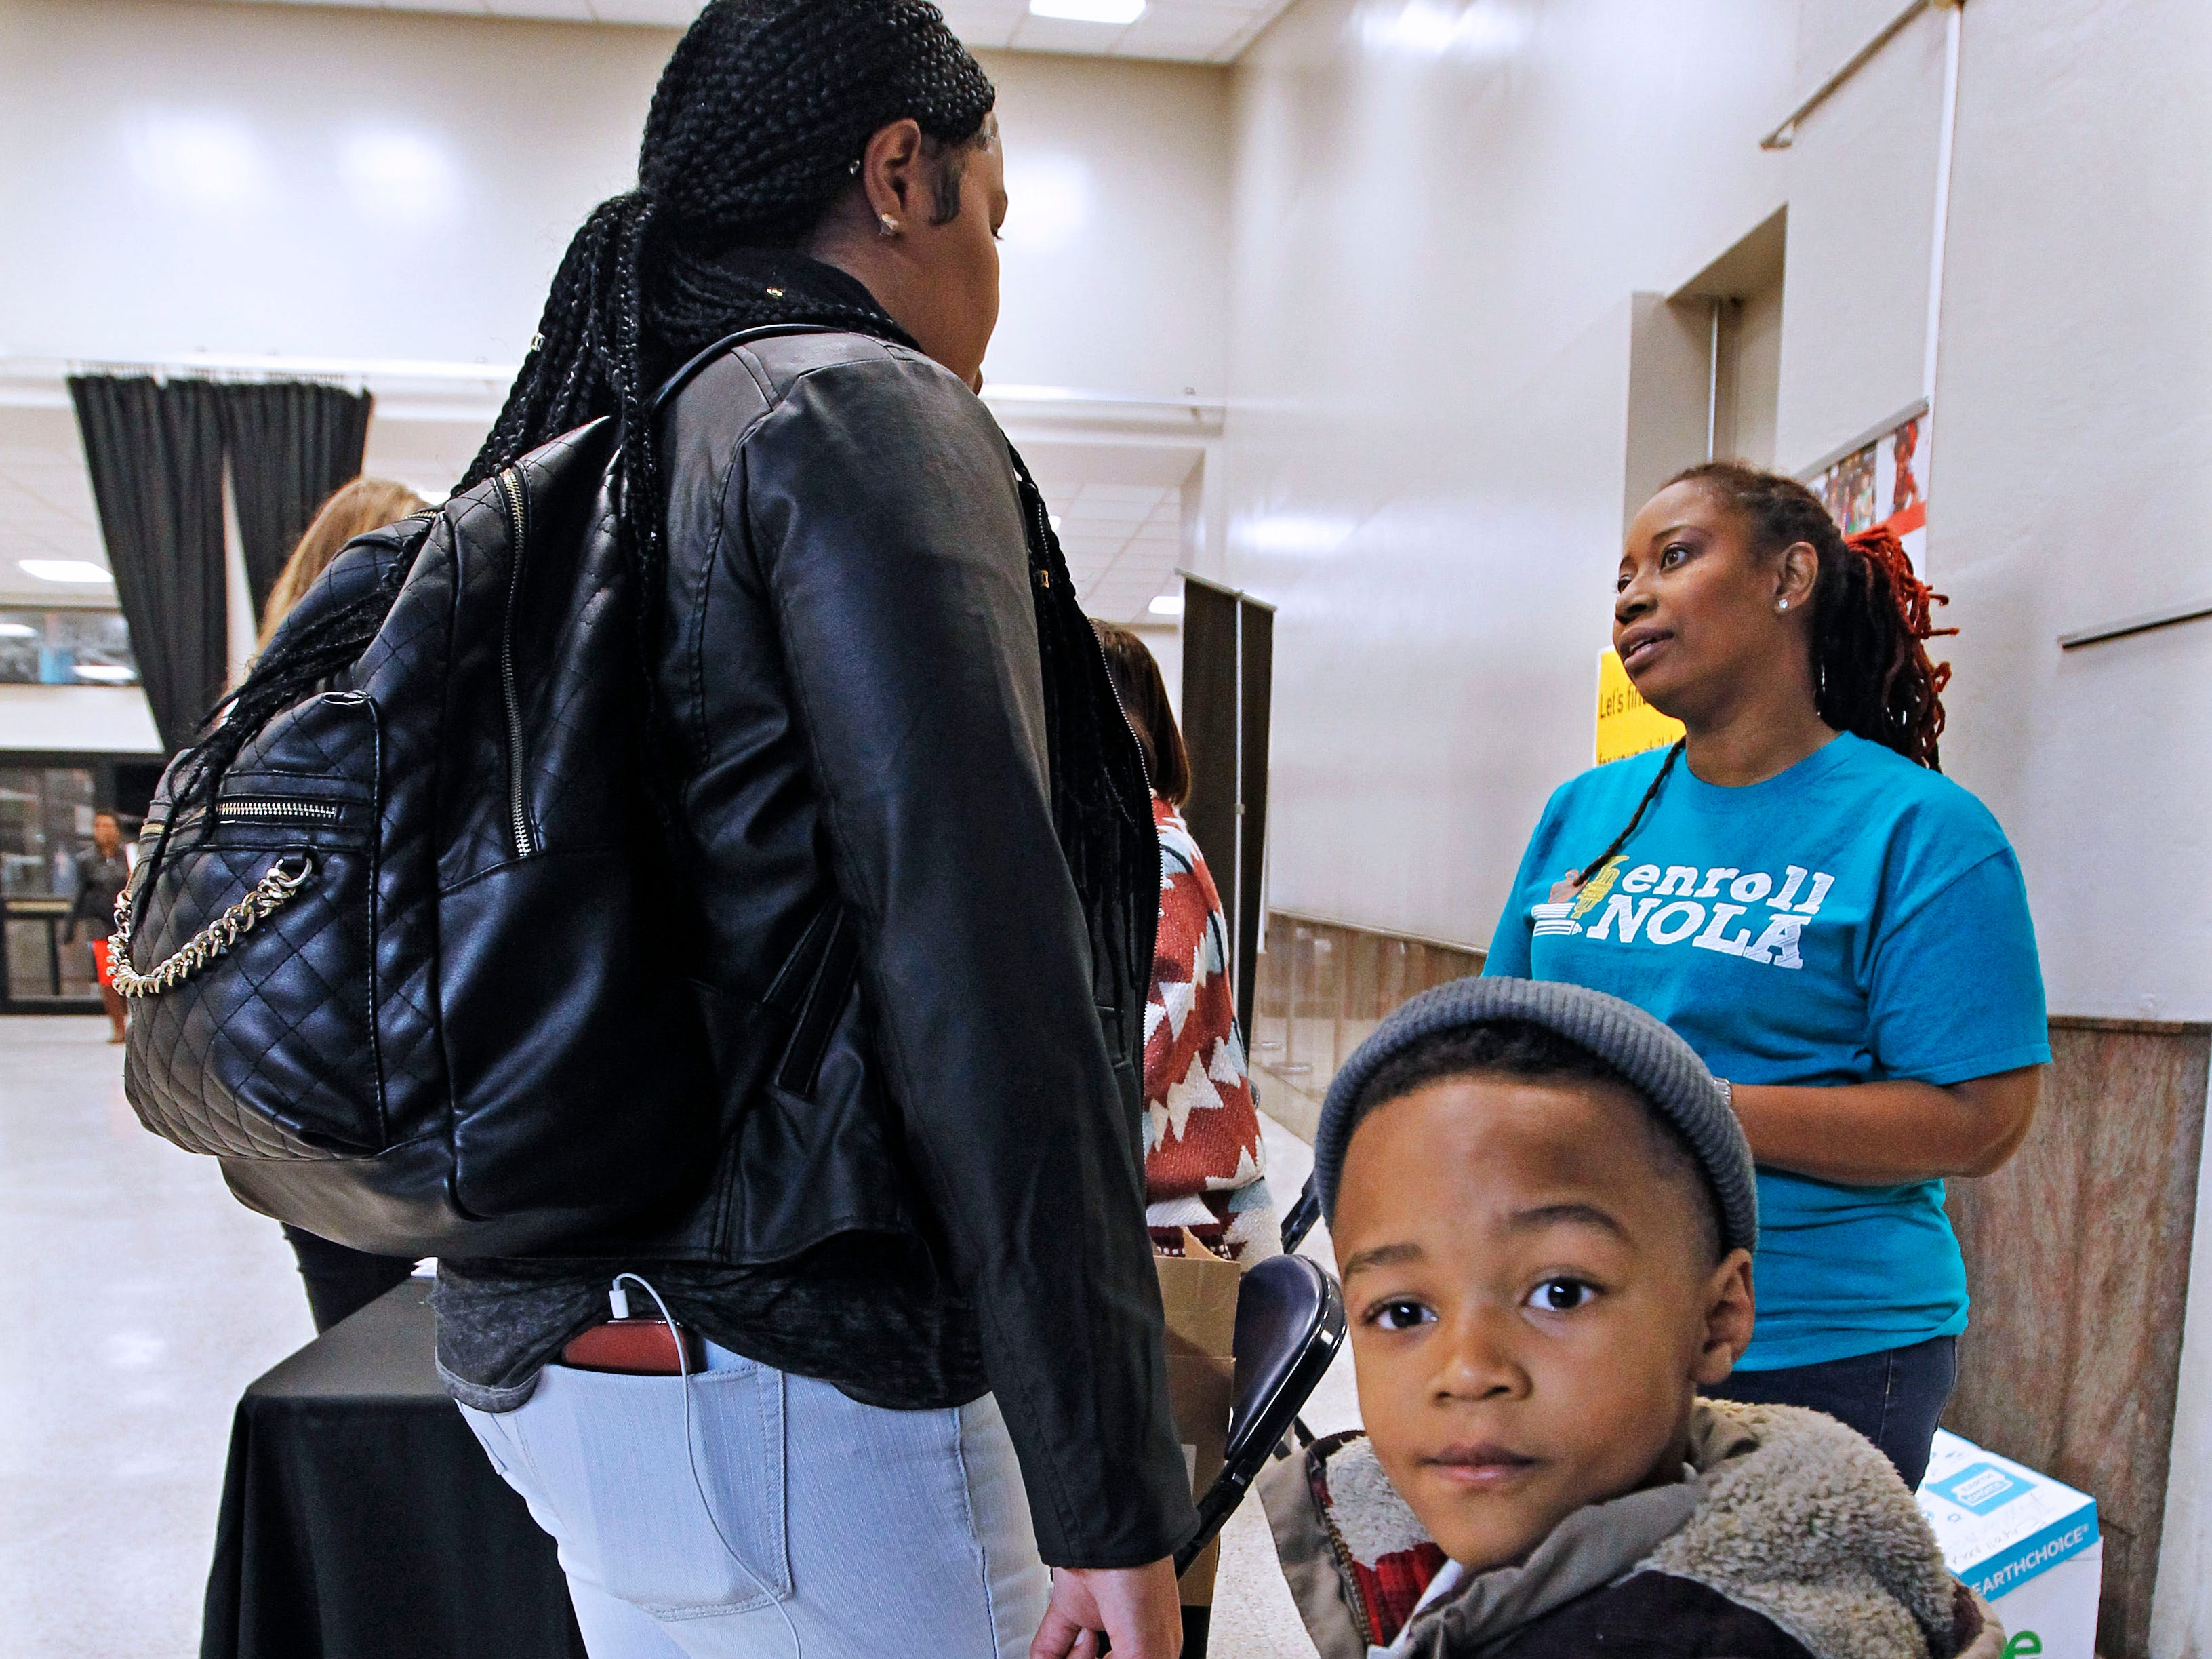 Marvin R. McCants, Jr., 4, waits with his mother Ebony Watson who talks with a rep from Enroll Nola.